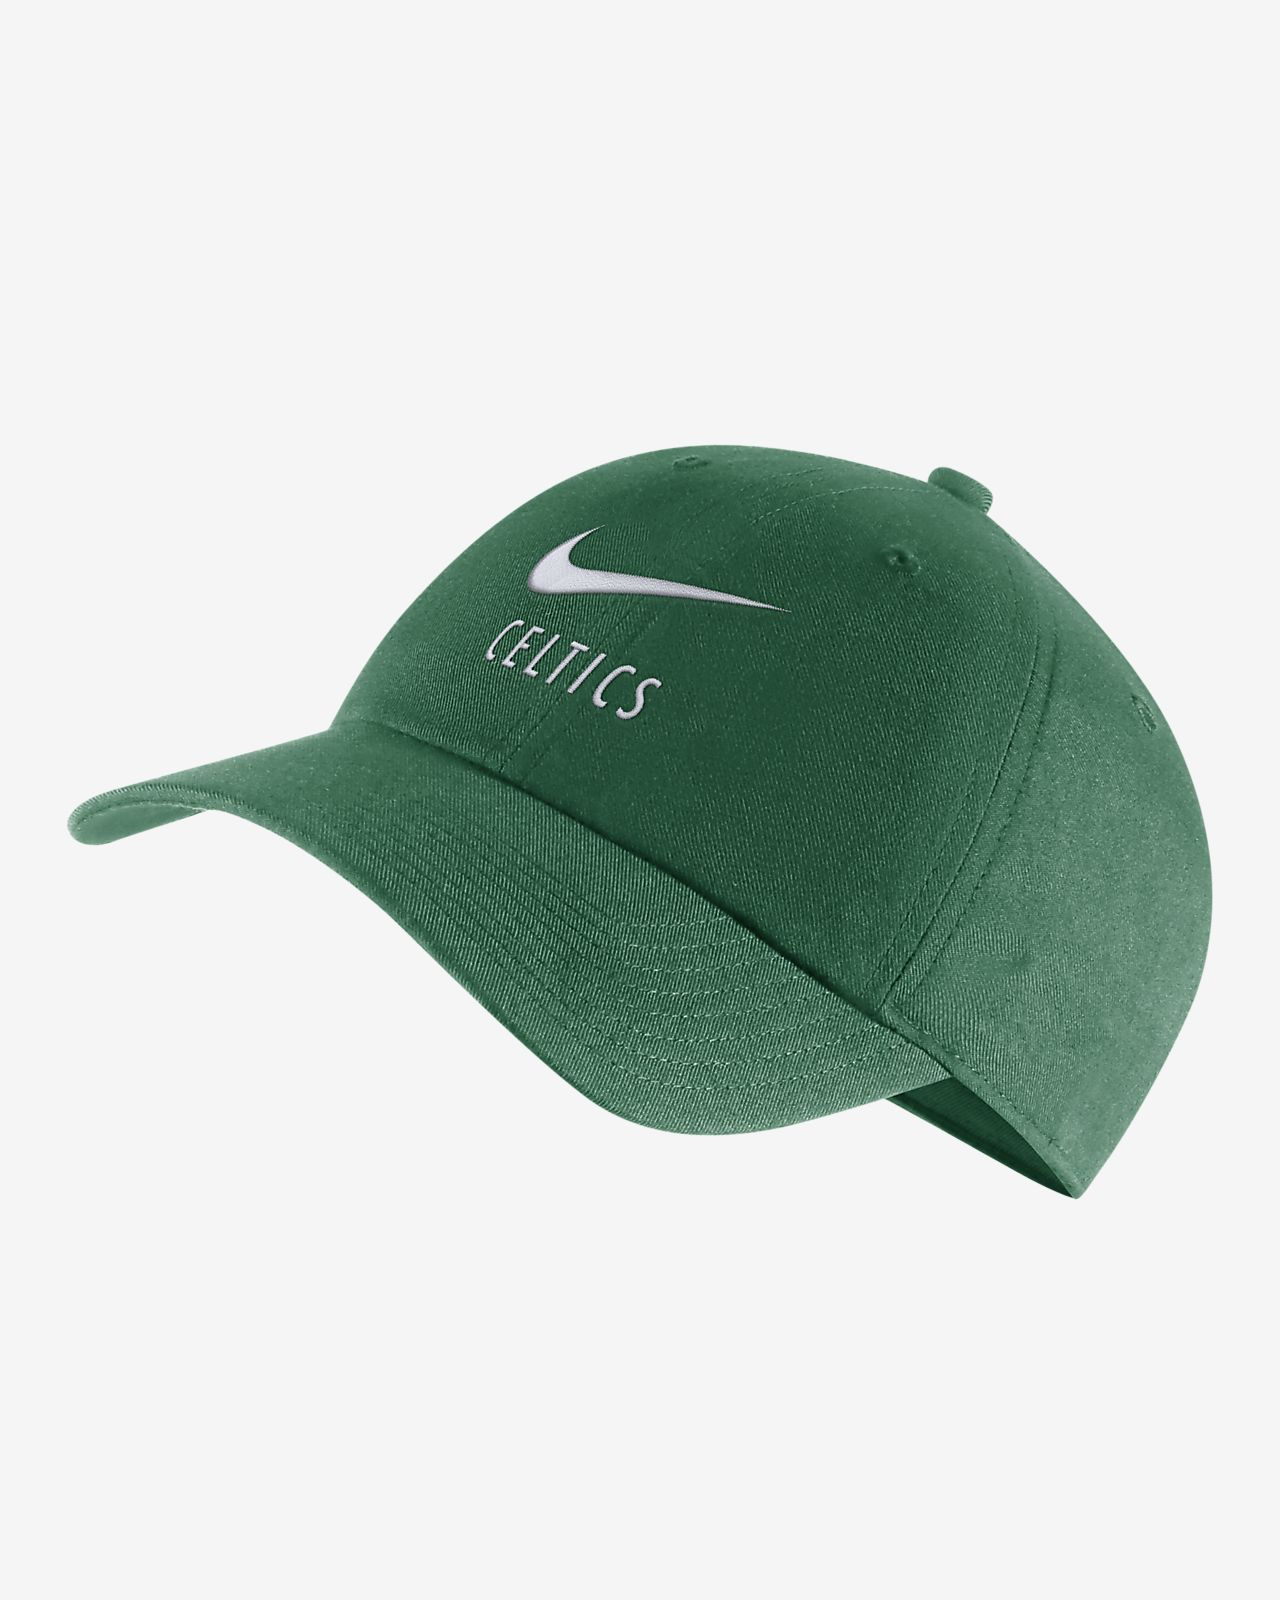 Boston Celtics Nike Heritage 86 NBA Cap